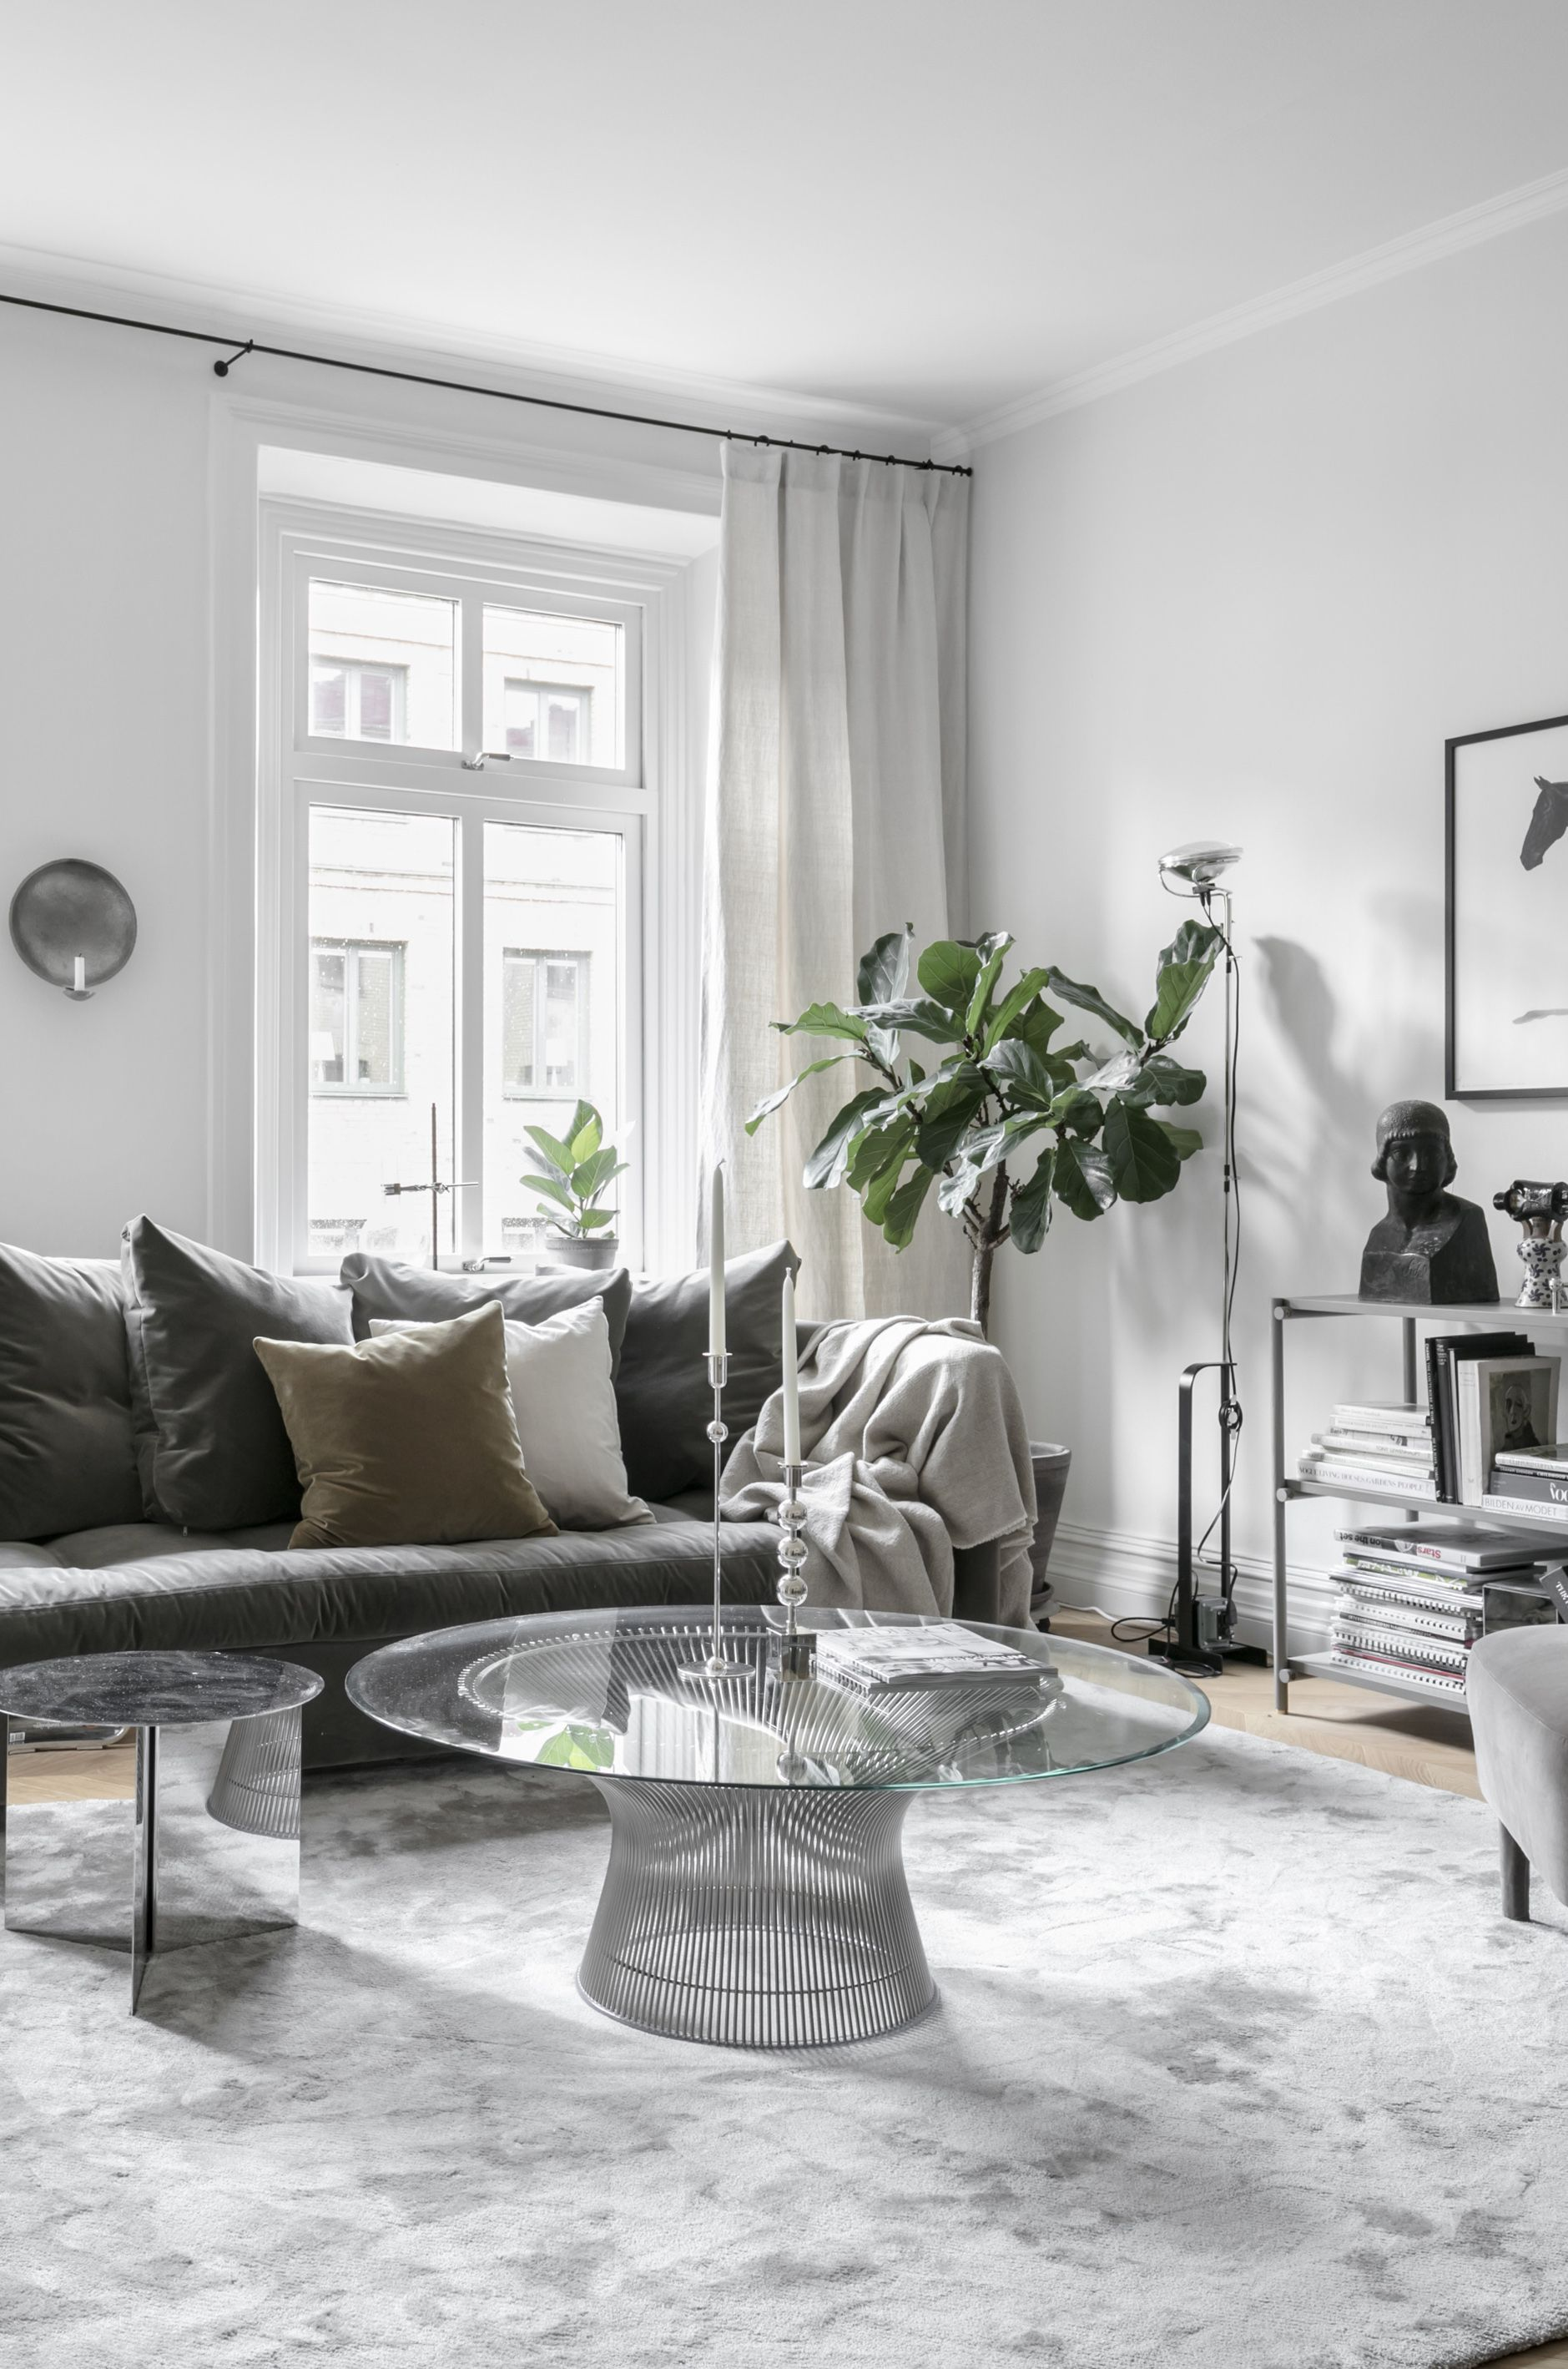 Beautifully decorated apartment | Apartments, Blog and Living rooms